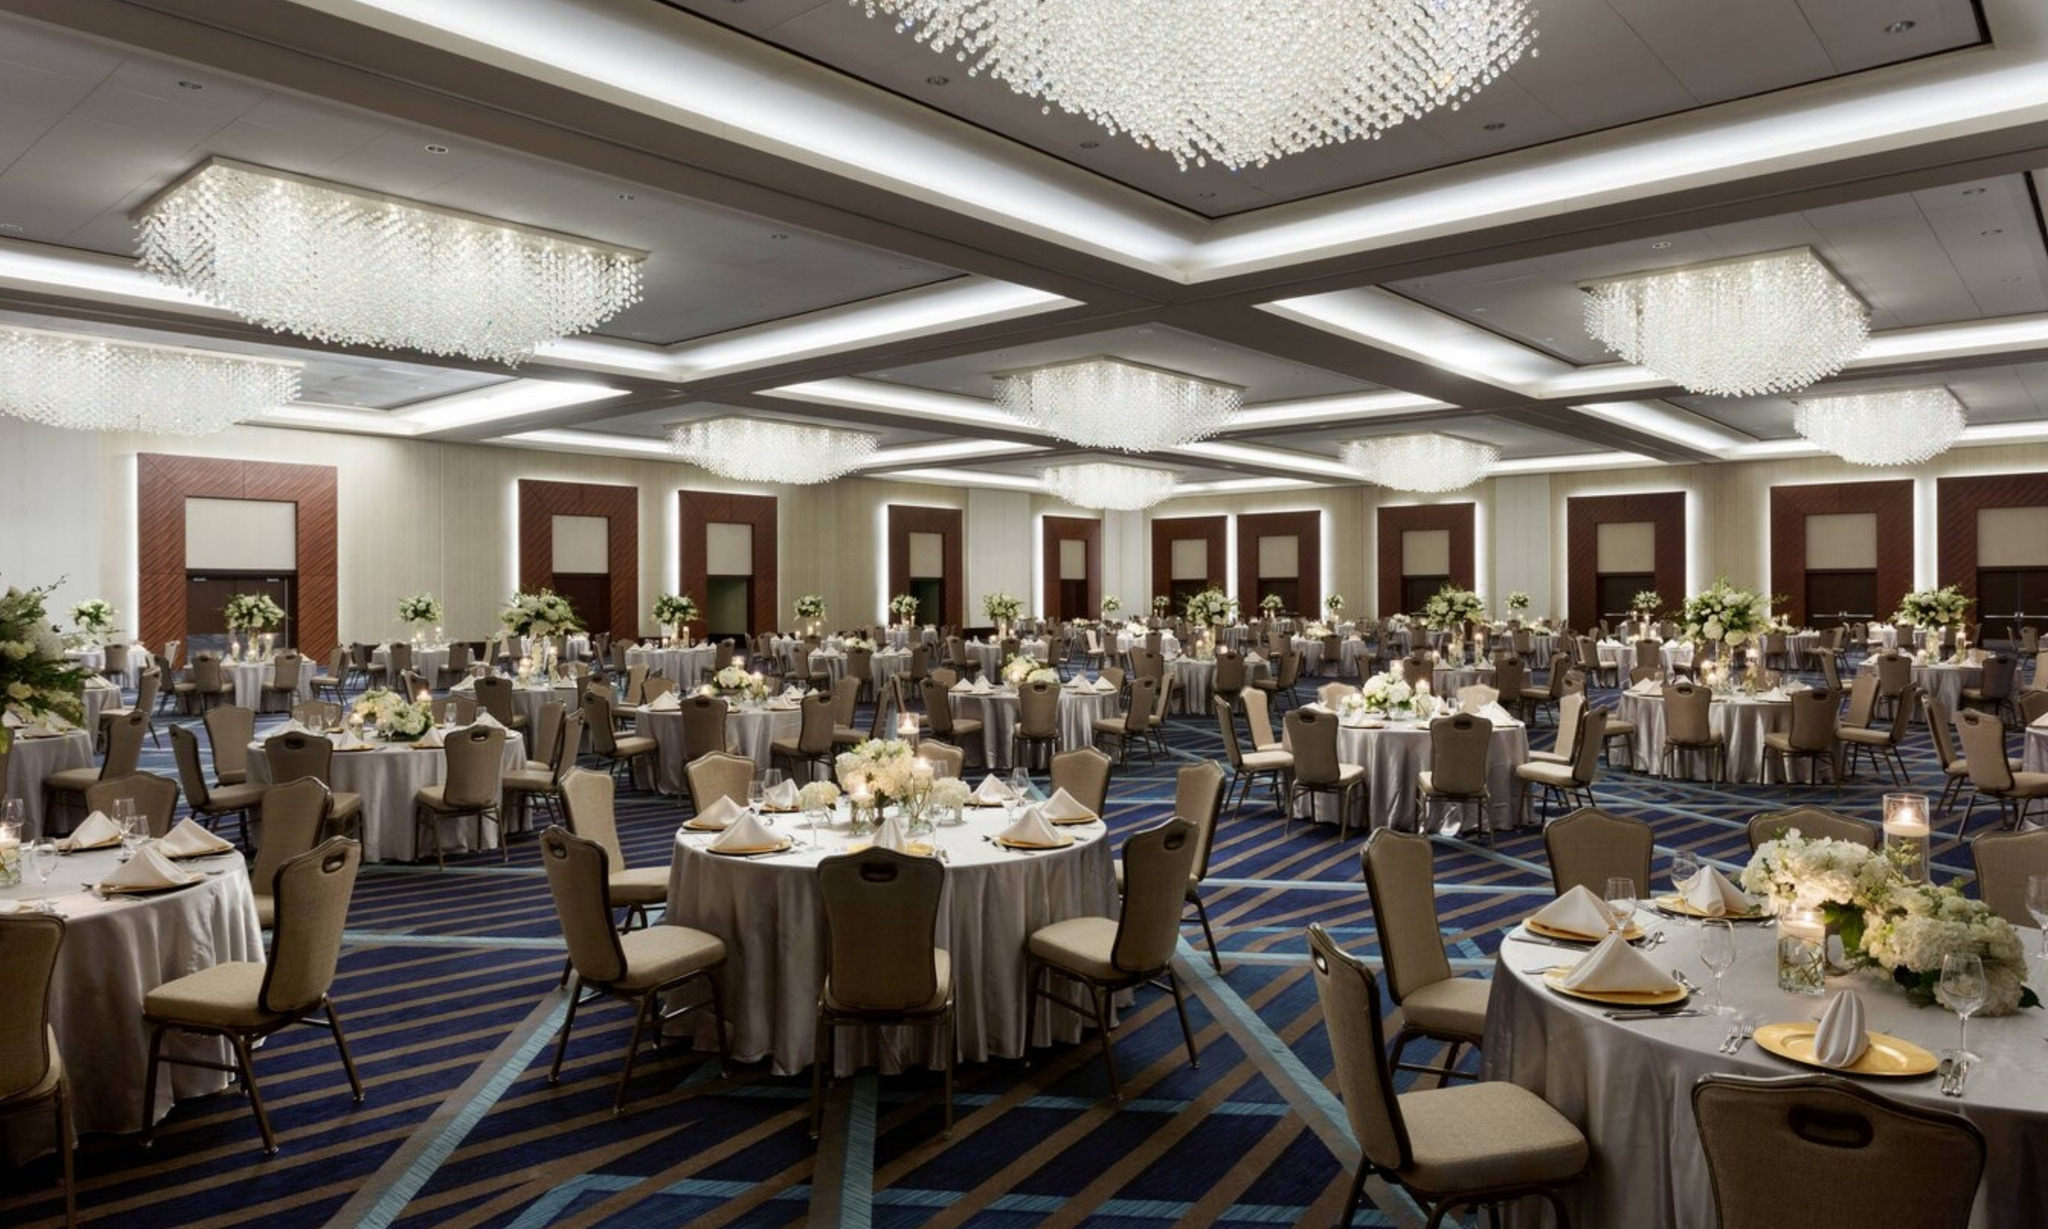 Blue carpet, gold chairs and crystal light fixtures at Marriott Marquis Houston ballroom